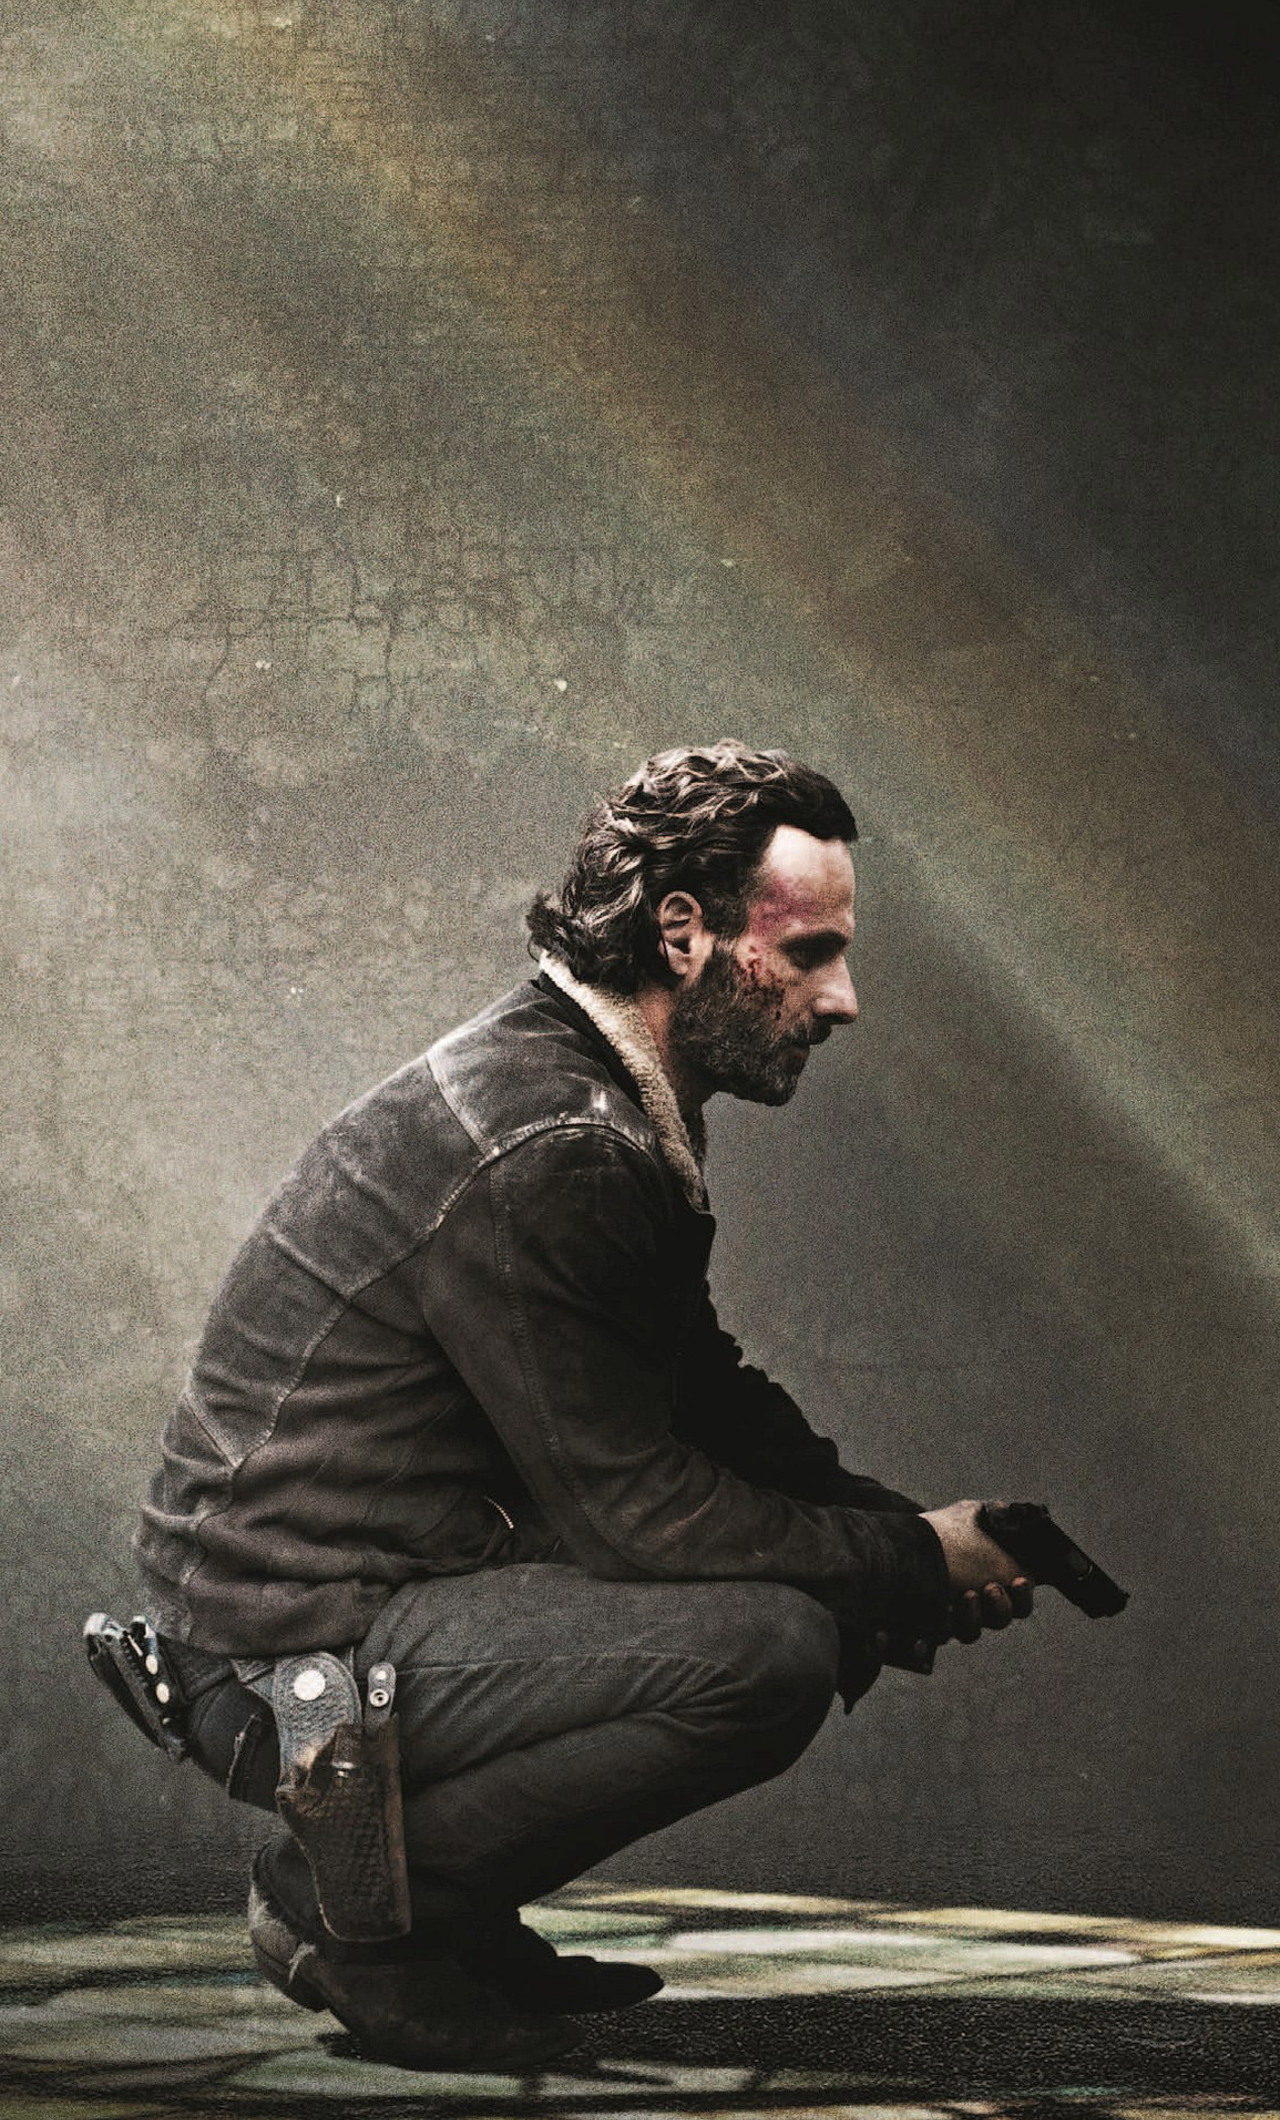 1280x2120 rick grimes the walking dead iphone 6+ hd 4k wallpapers